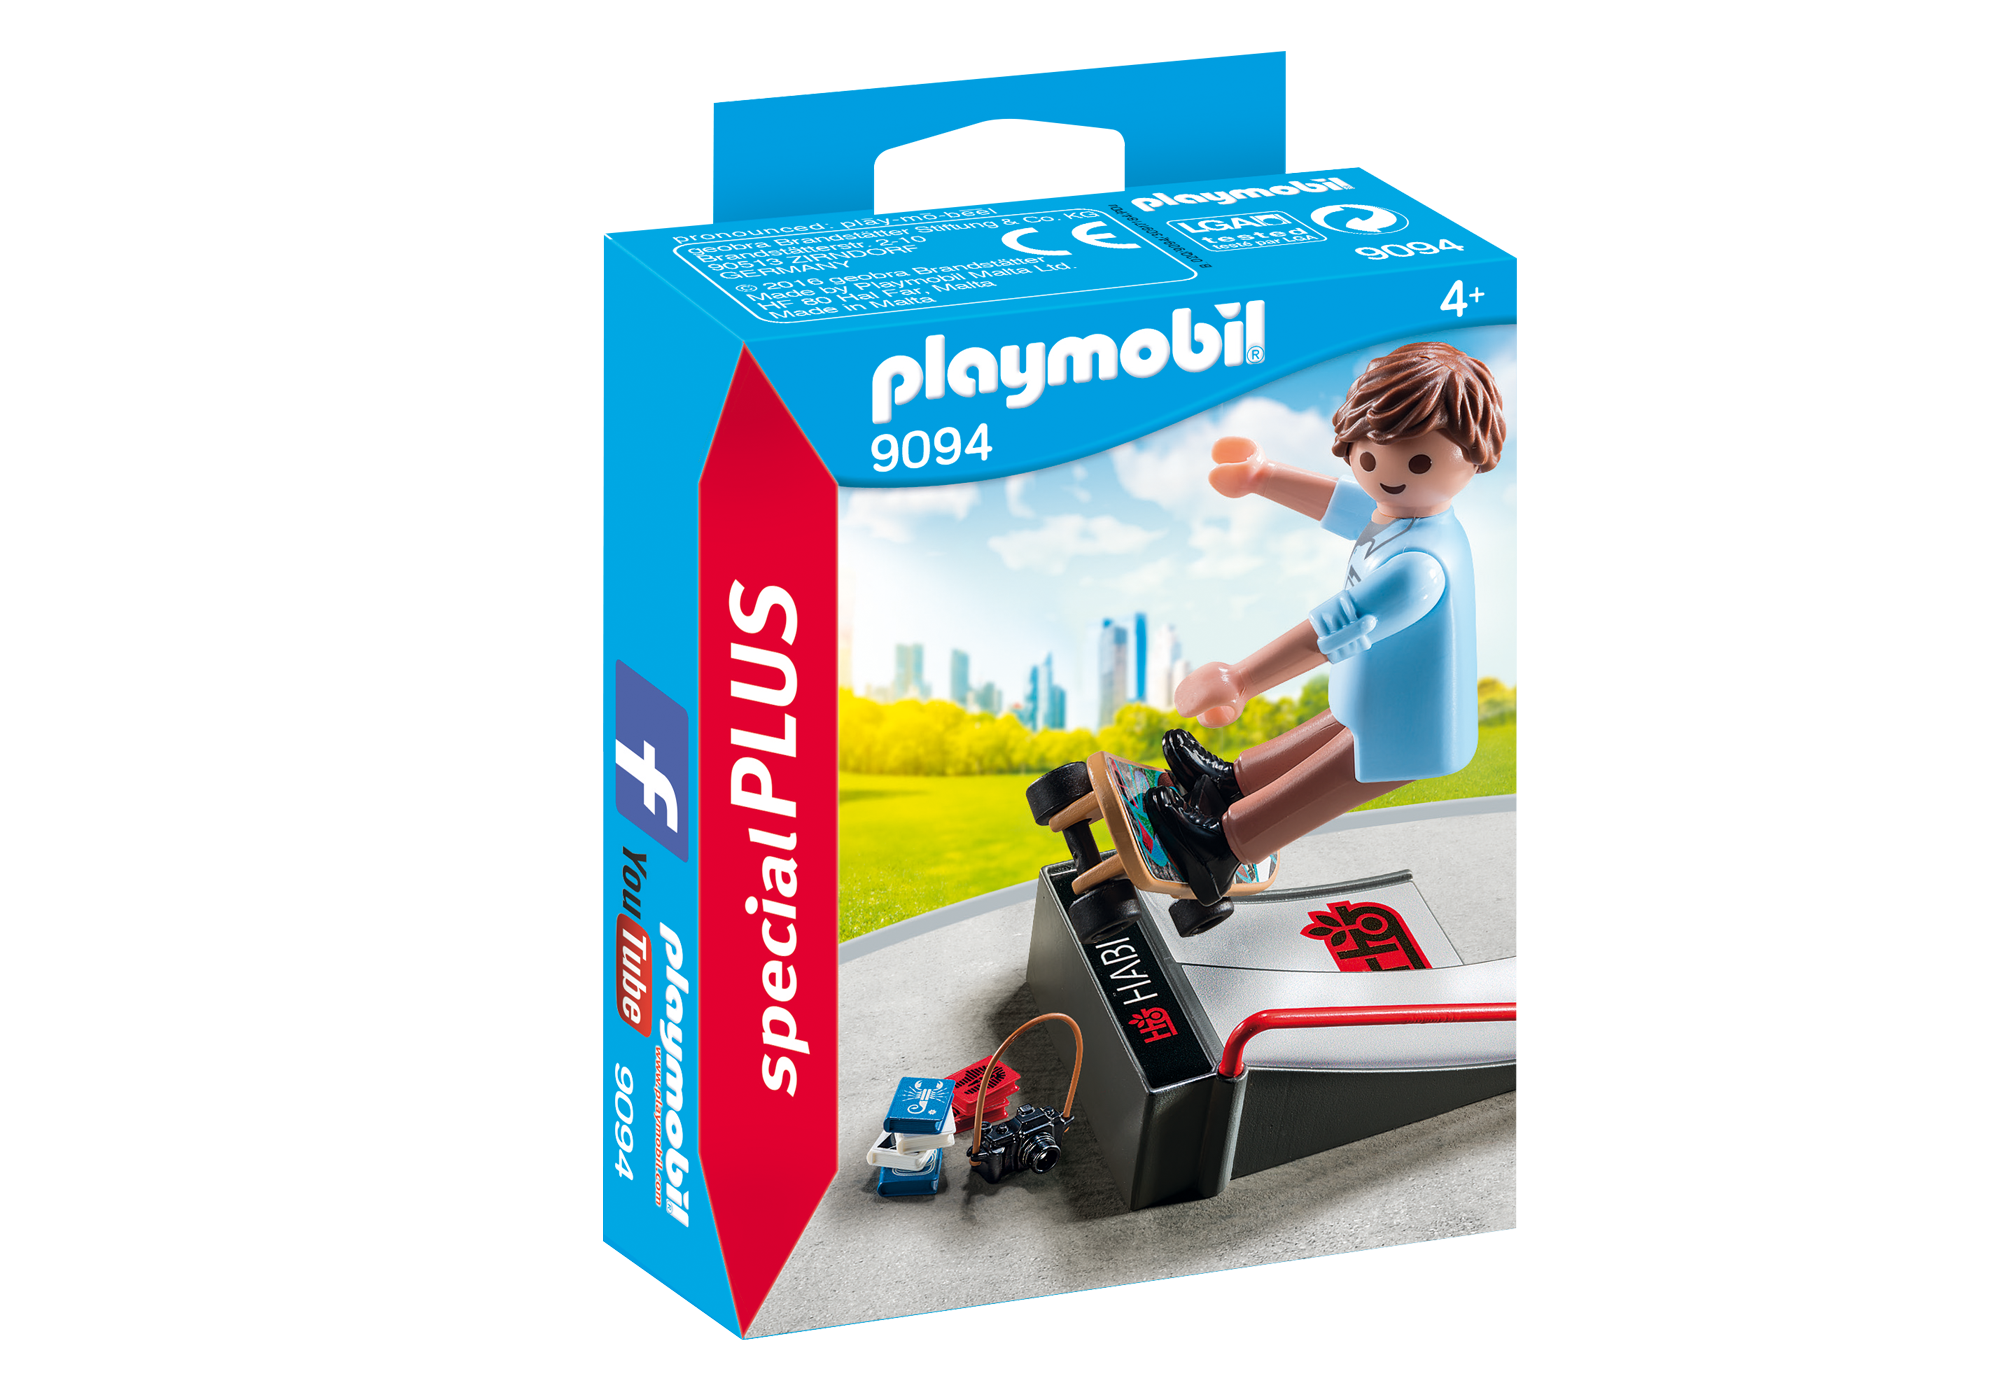 http://media.playmobil.com/i/playmobil/9094_product_box_front/Skateboarder with Ramp